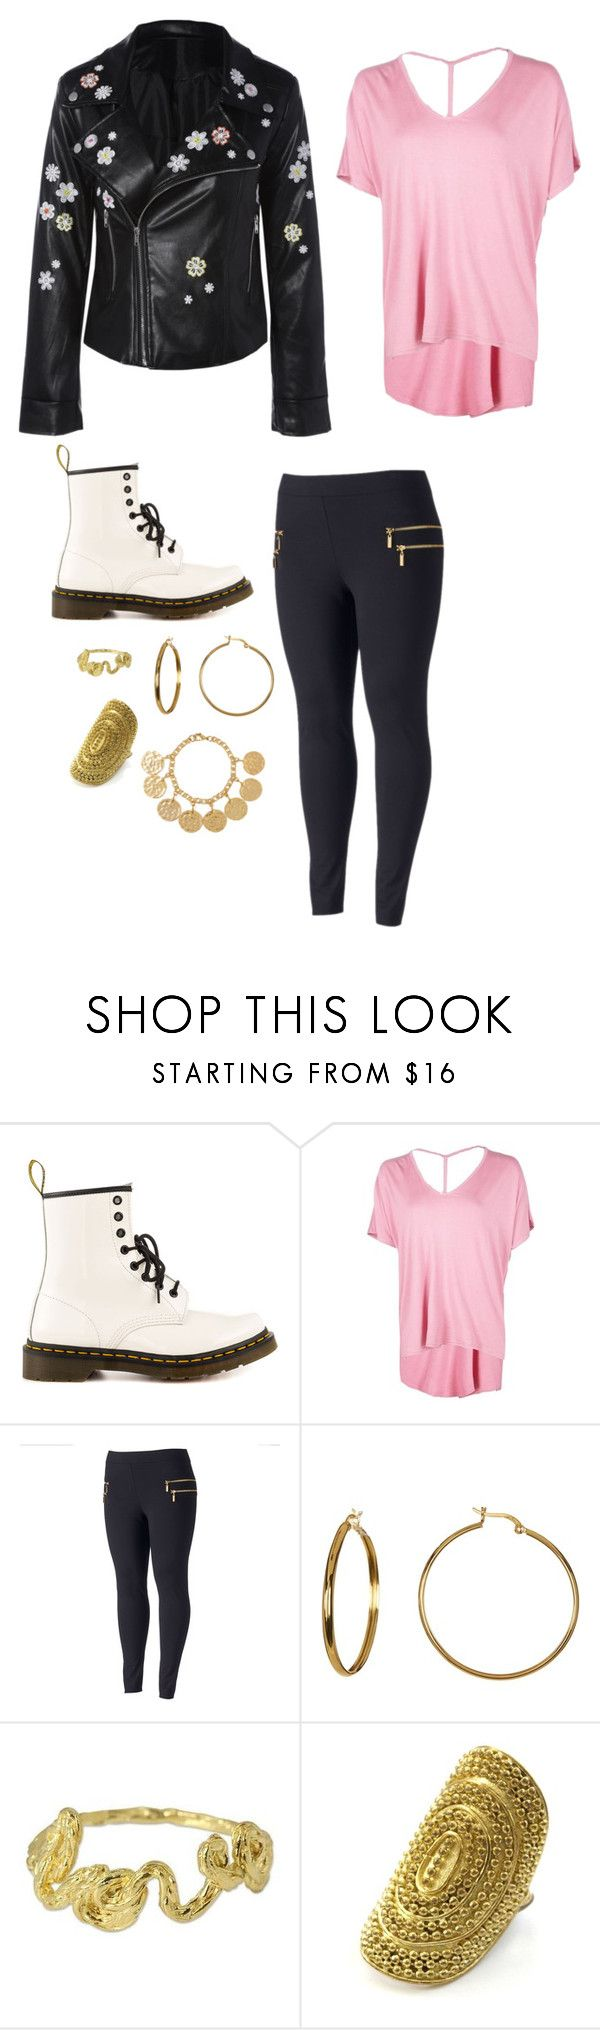 """Flower Power"" by riley-specht ❤ liked on Polyvore featuring Dr. Martens, Boohoo, Jennifer Lopez, Argento Vivo, NOVICA, Kenneth Jay Lane and plus size clothing"